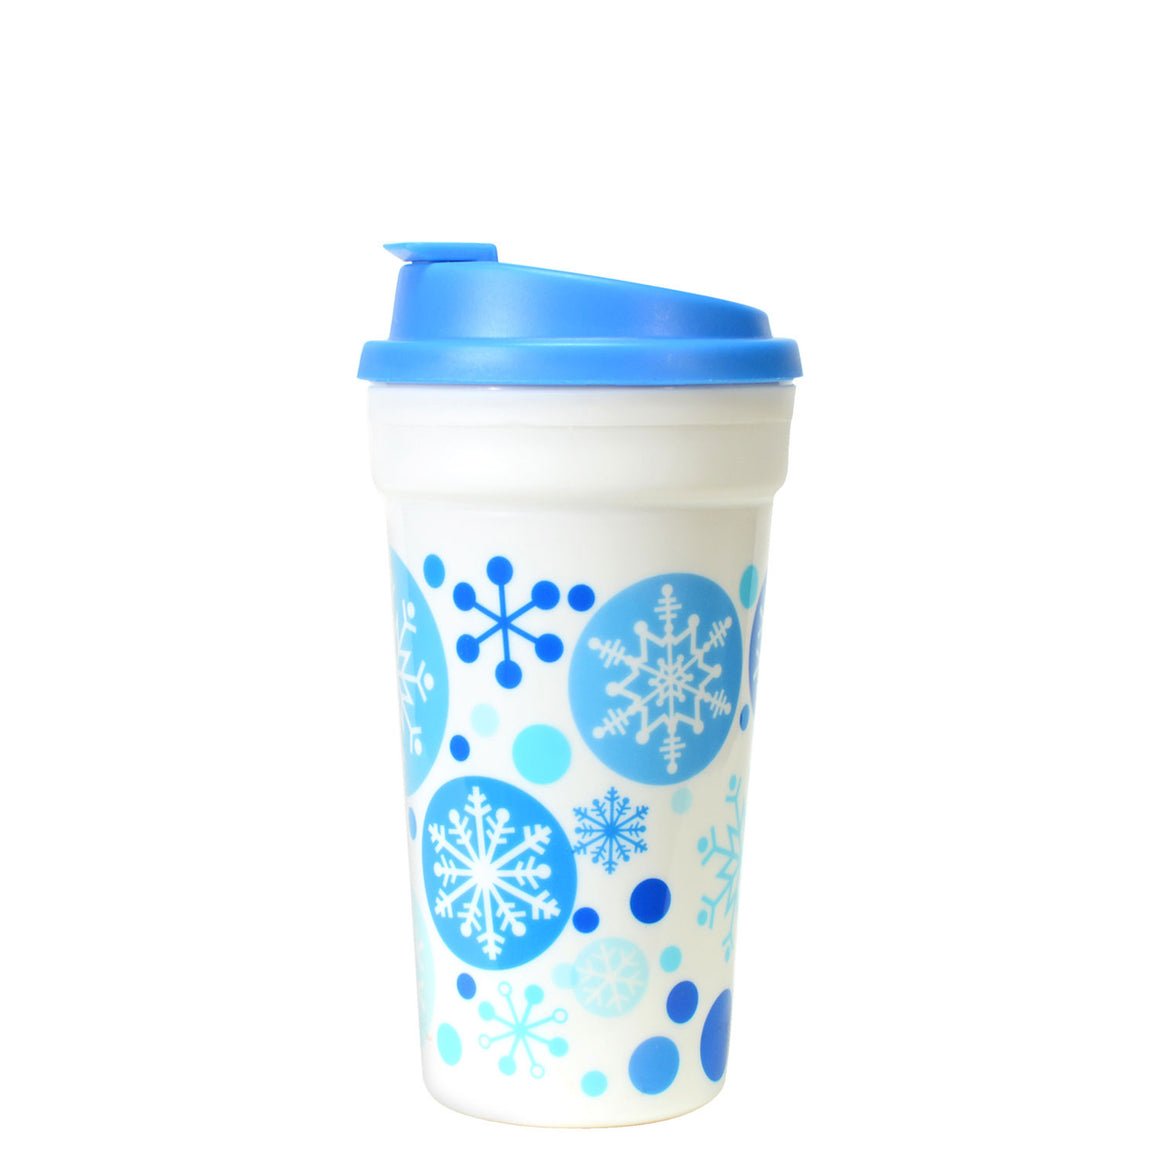 Bright Blue / Penguins 15 Oz Holiday Coffee Mug at Cool Gear Winter Holiday